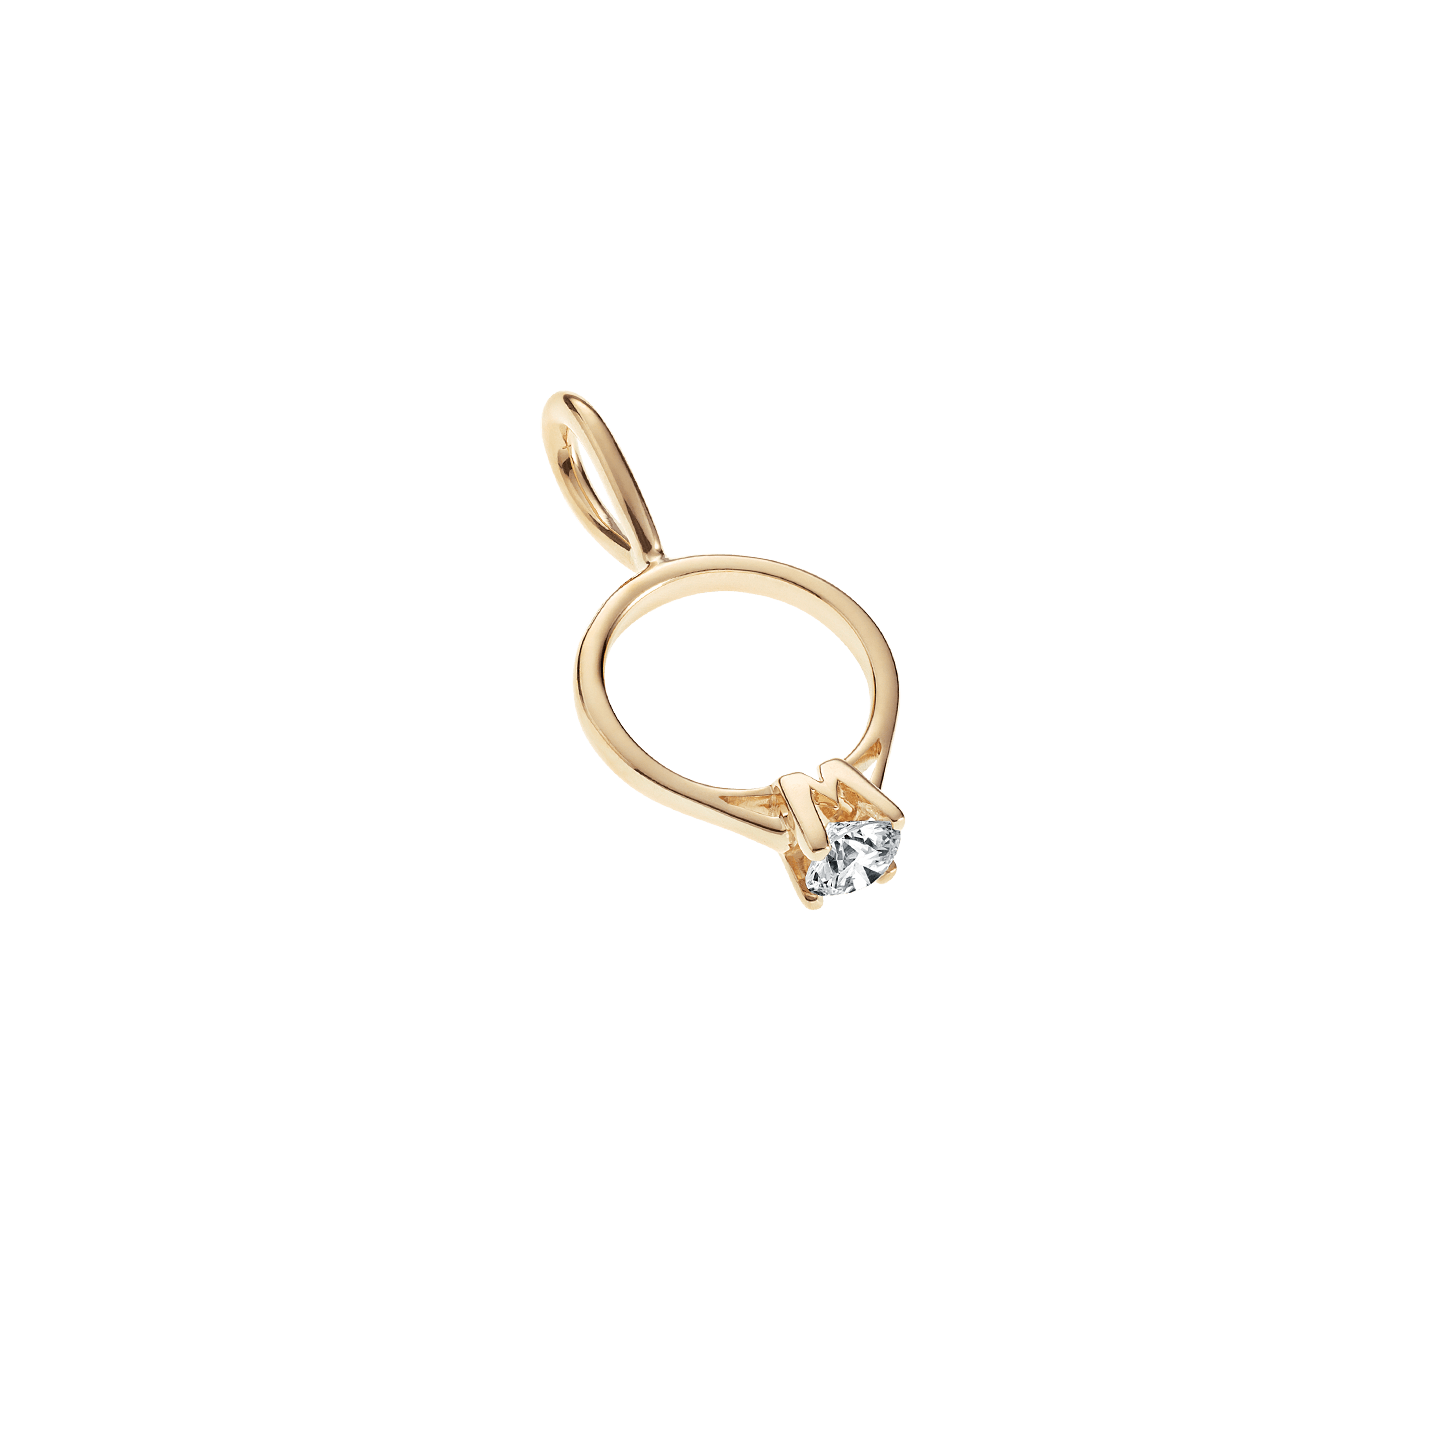 Engagement Ring Charm in Yellow Gold, Product Image 4